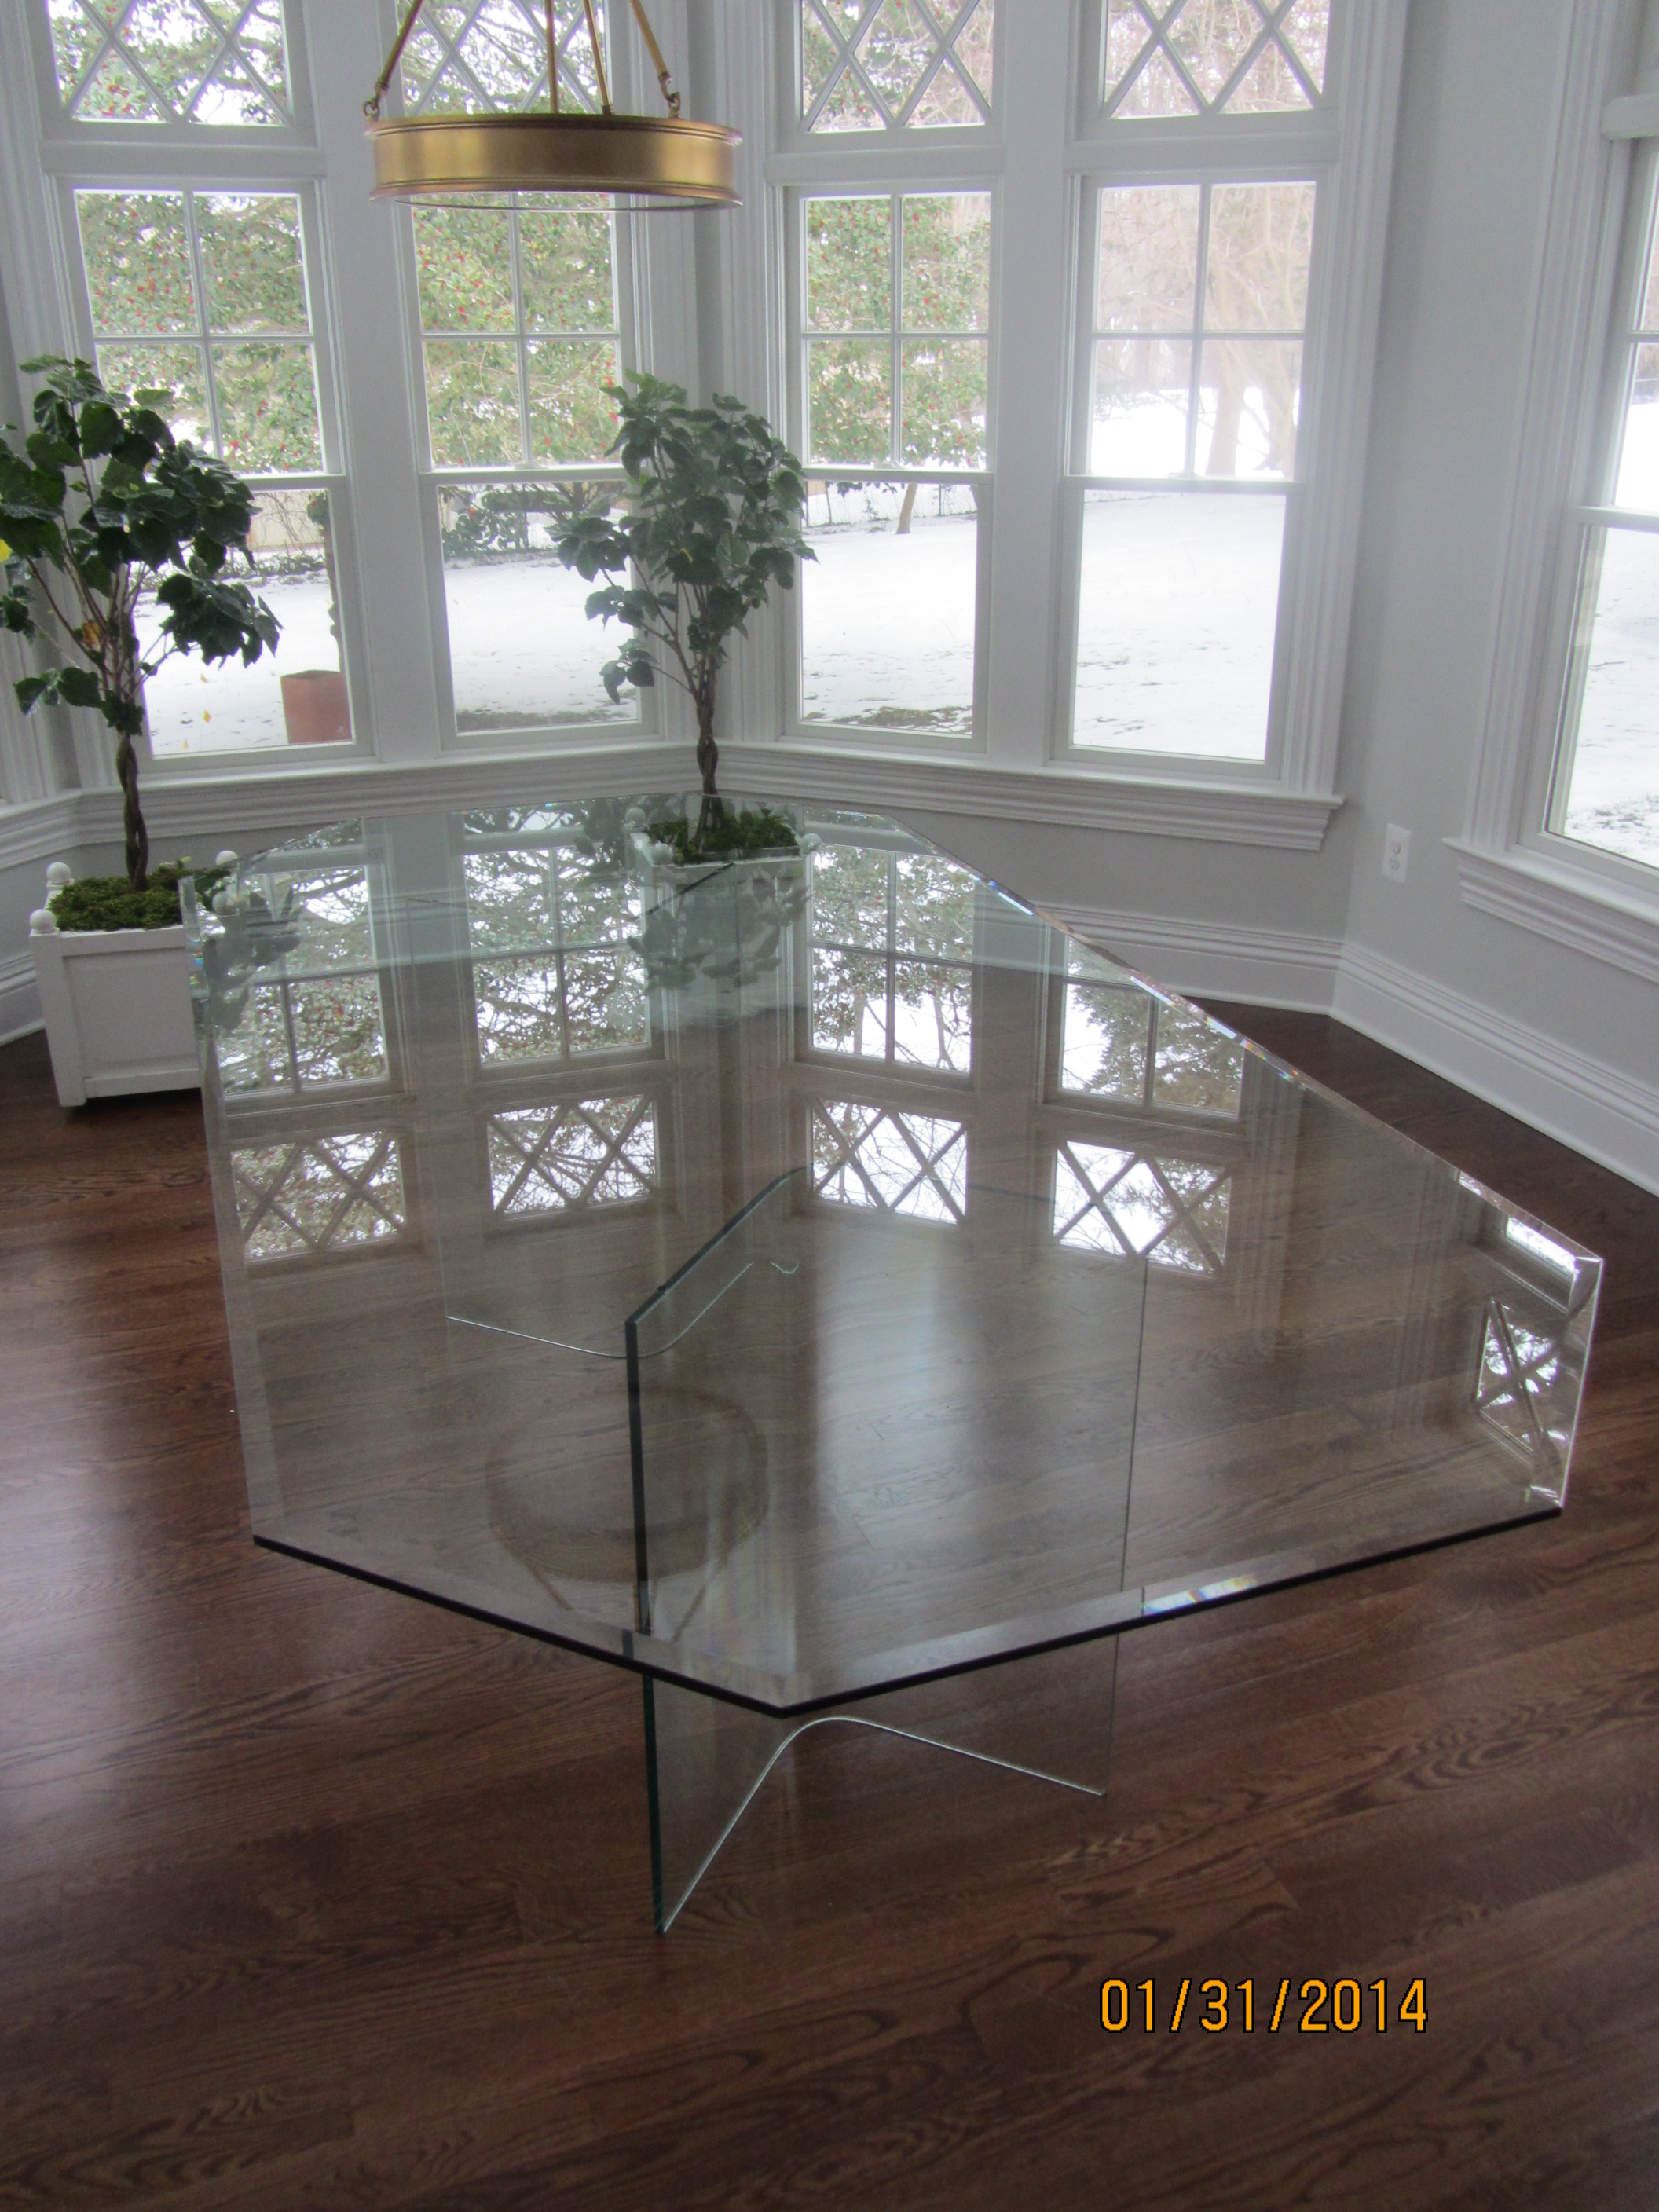 all_glass_table4.jpg